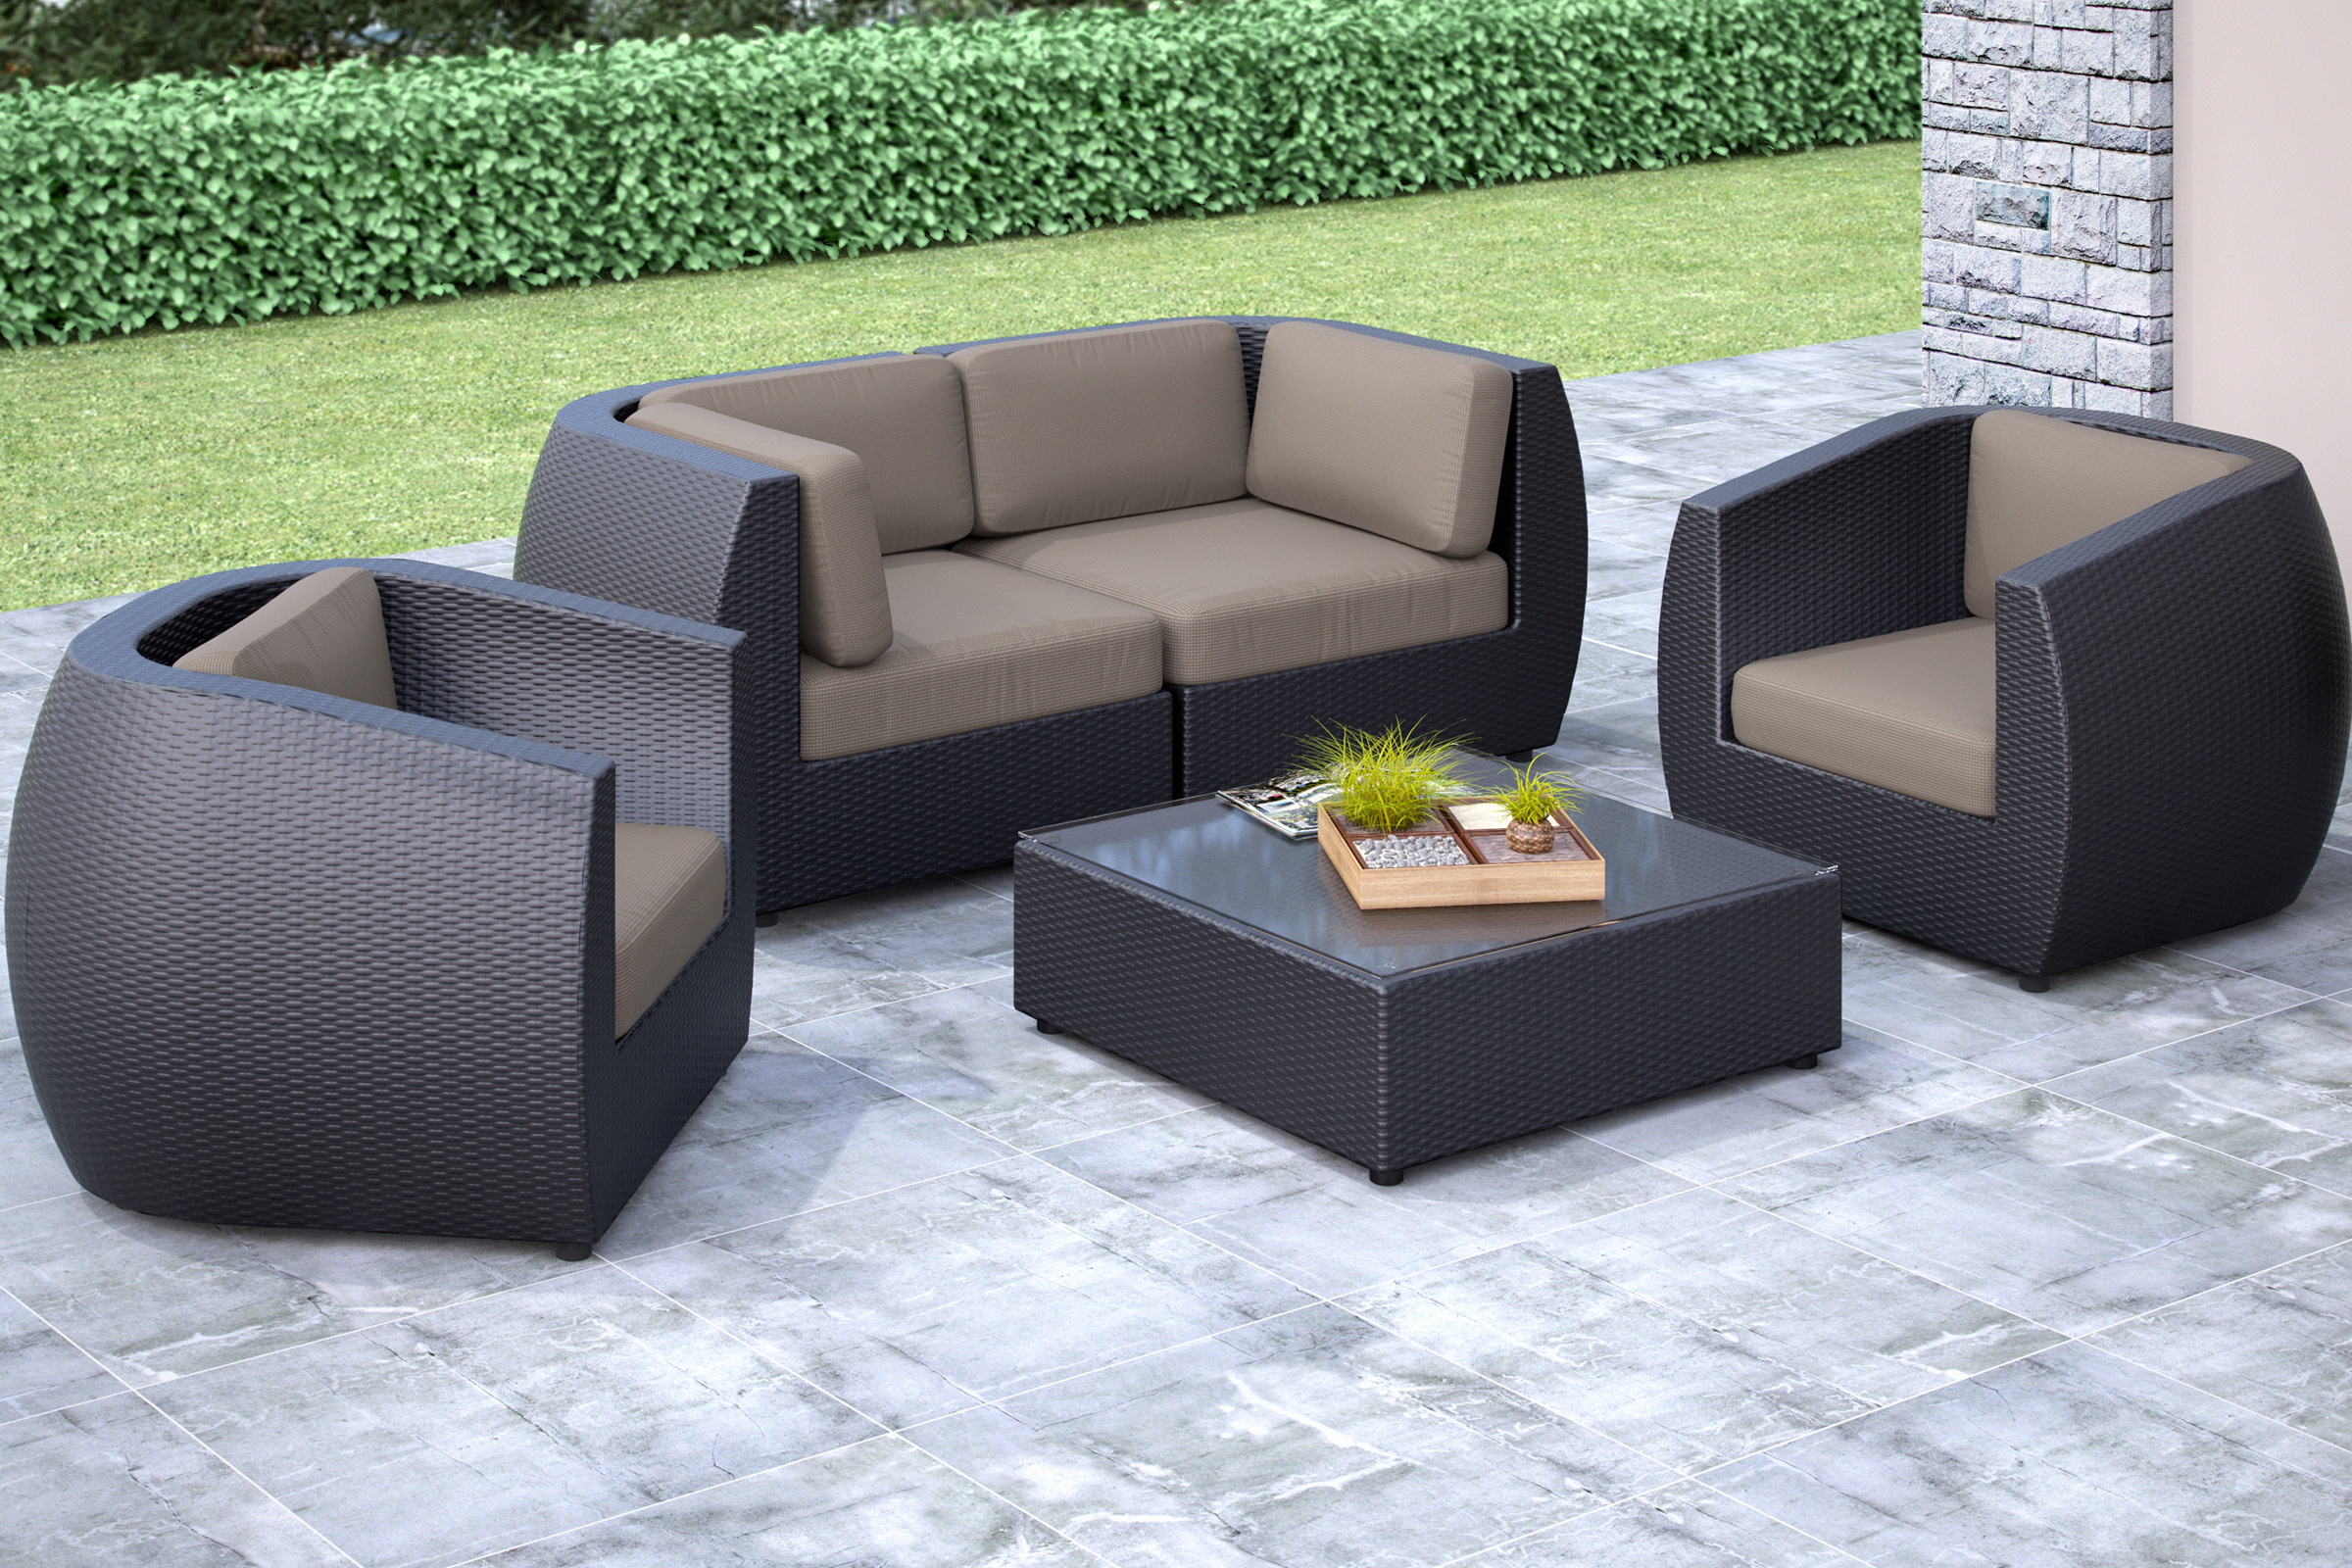 seattle 5 piece sofa and chair patio set